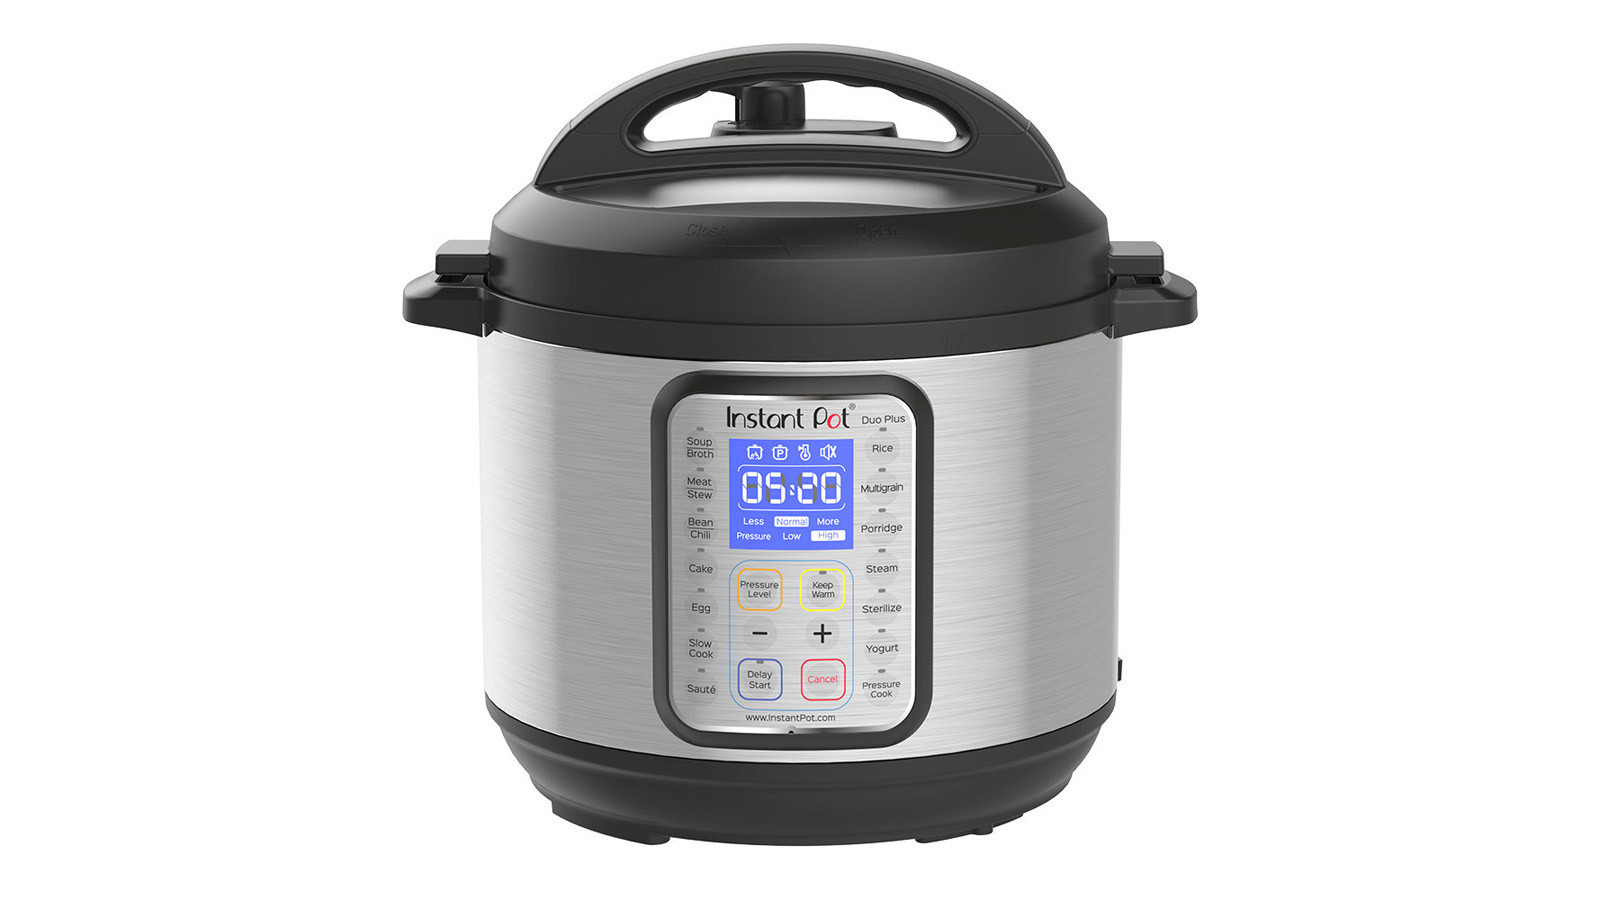 The Instant pot can be used as a pressure cooker that makes broth, stews, chili, cakes and more.